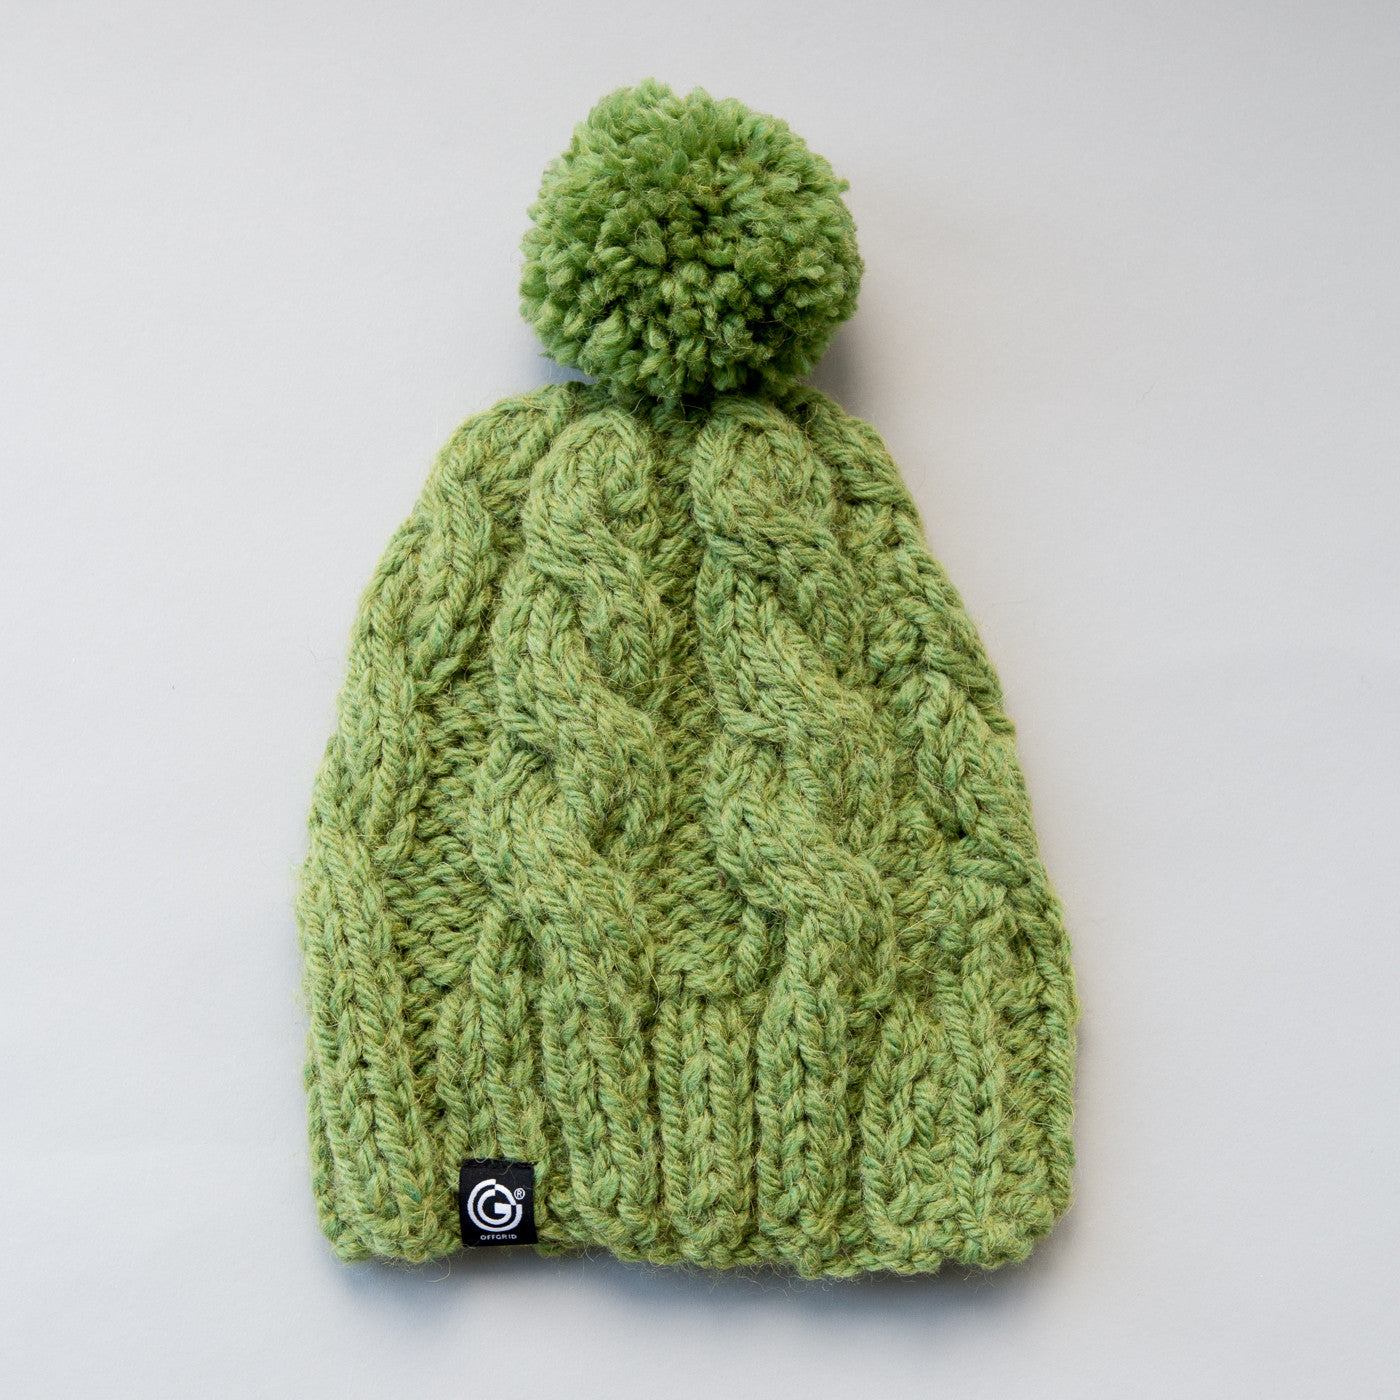 Chunky Cable Beanie with bobble - Ivy